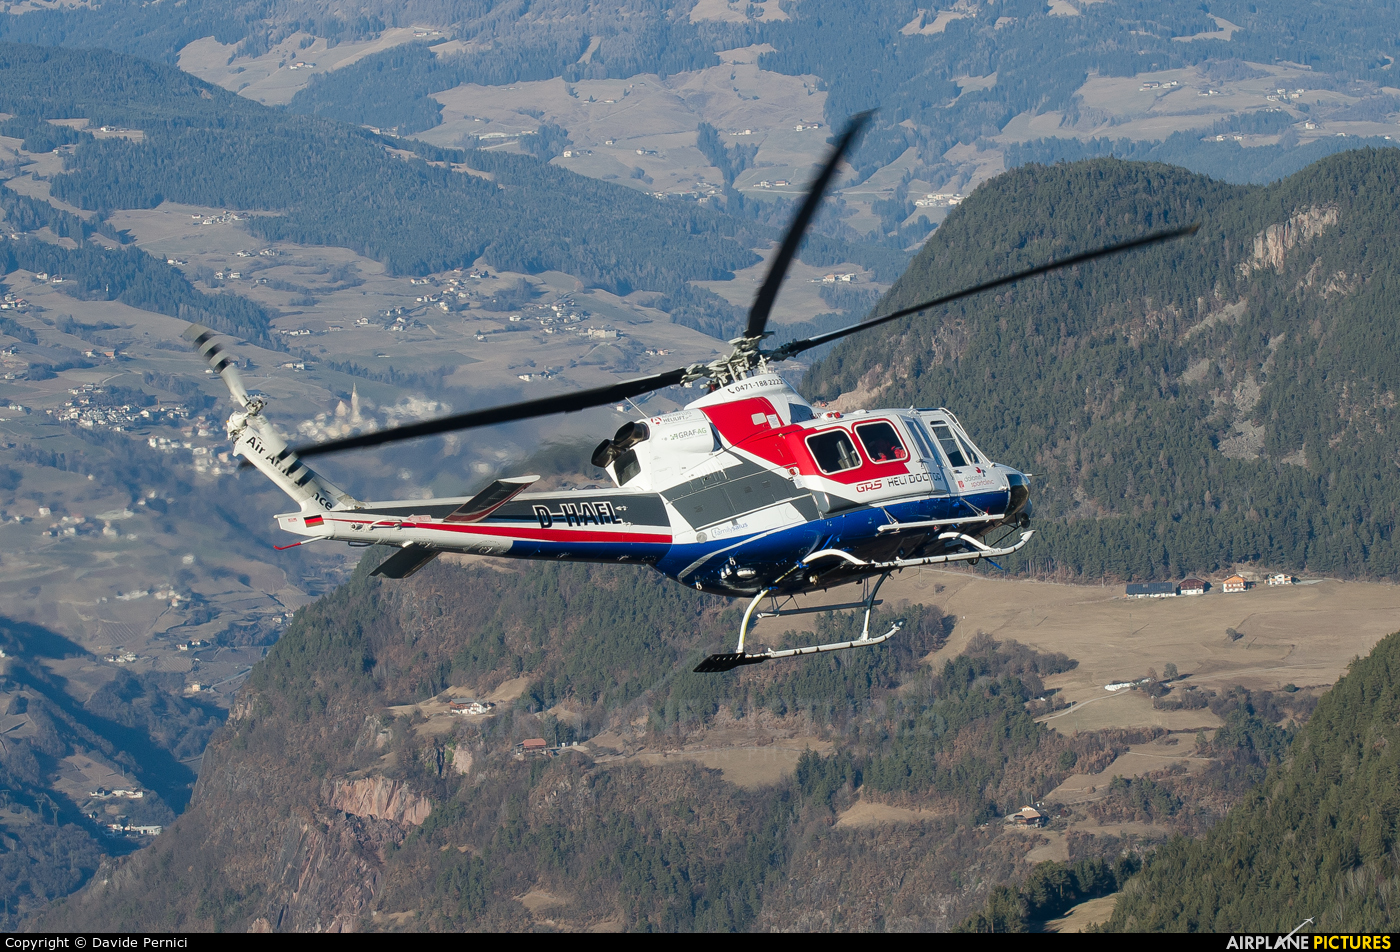 GRS Helidoctor D-HAFL aircraft at In Flight - Italy